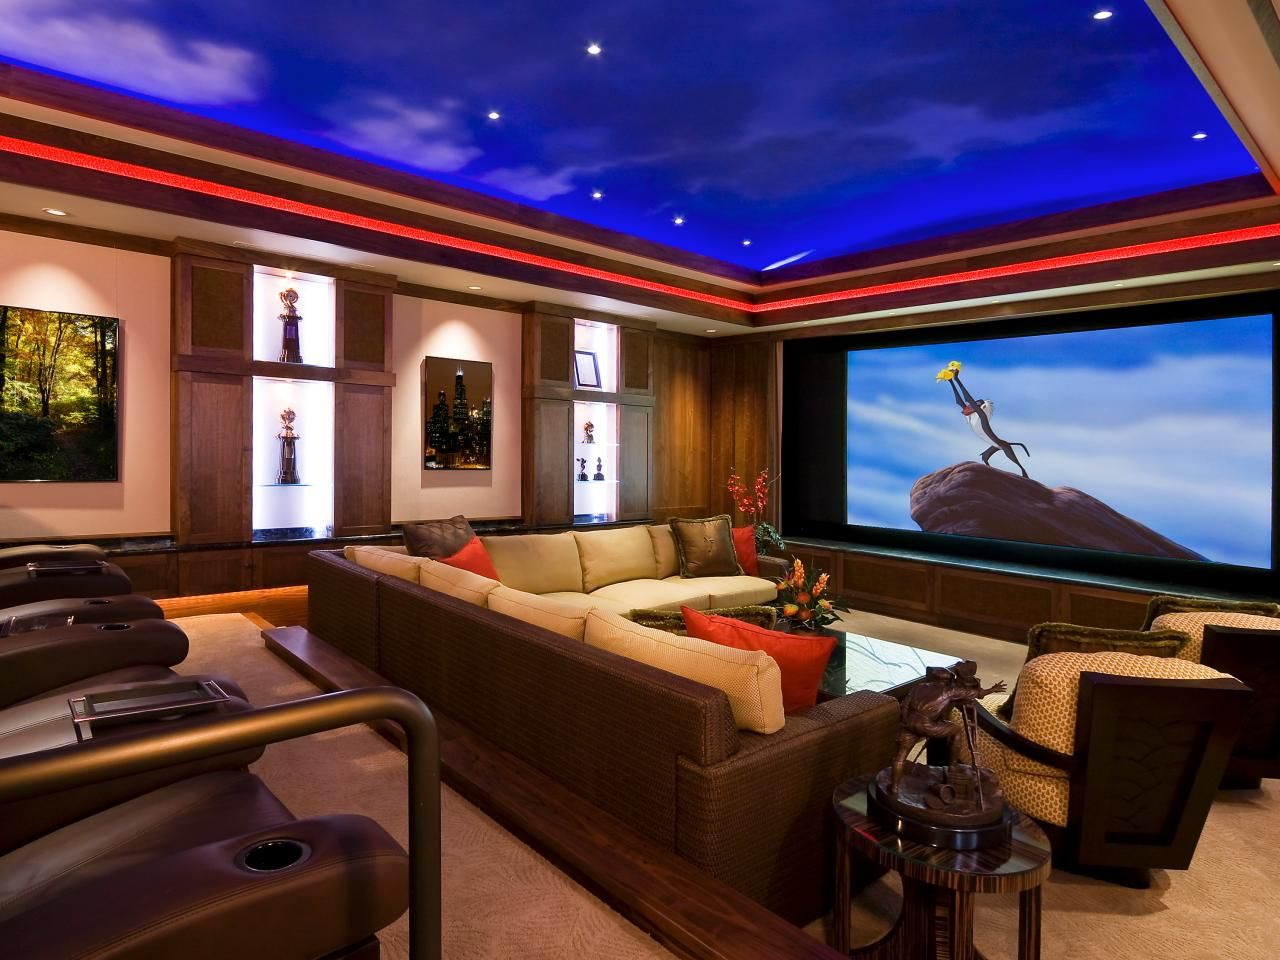 Choosing A Room For A Home Theater At Home Movie Theater Home